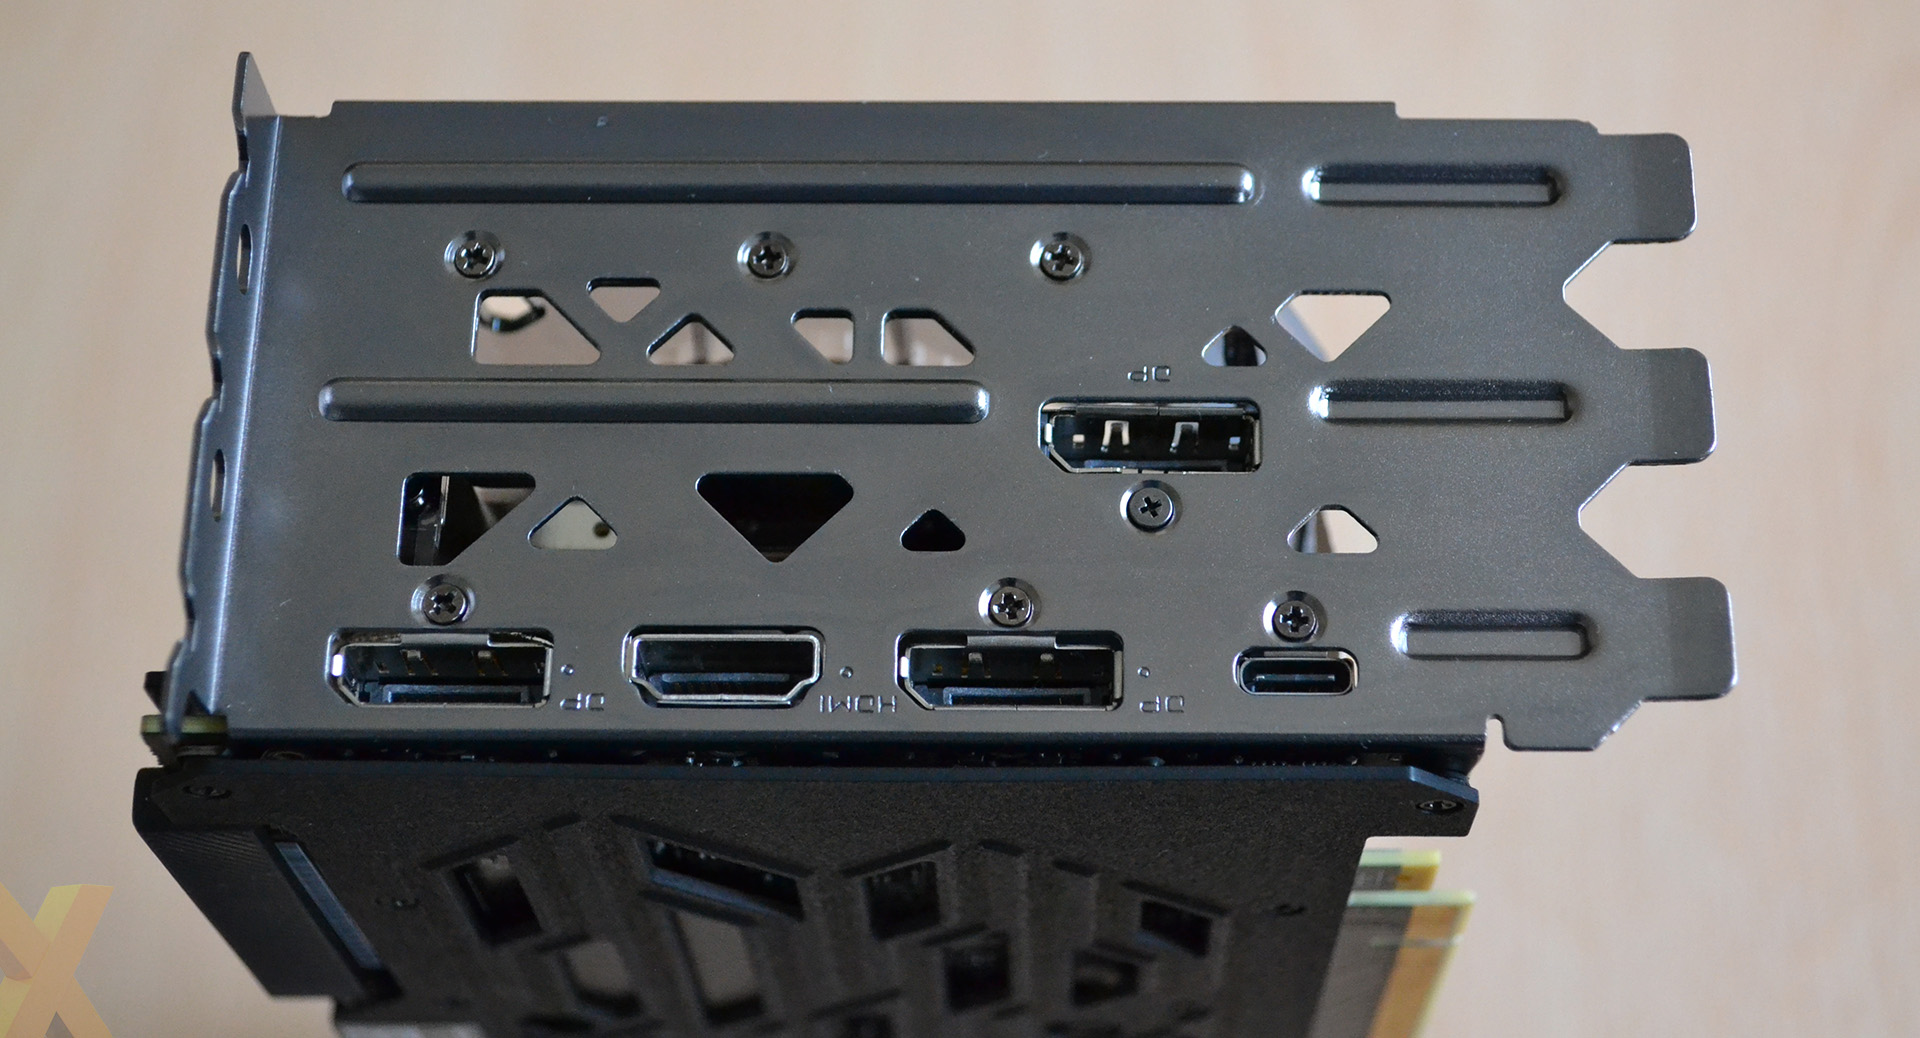 Review Evga Geforce Rtx 2080 Xc Ultra Gaming Graphics Mad Max Engine Diagram Going Big On Height Requires A Three Slot I O Section That Looks Ungainly What Youll Notice Is The Five Outputs Are All In Same Position As